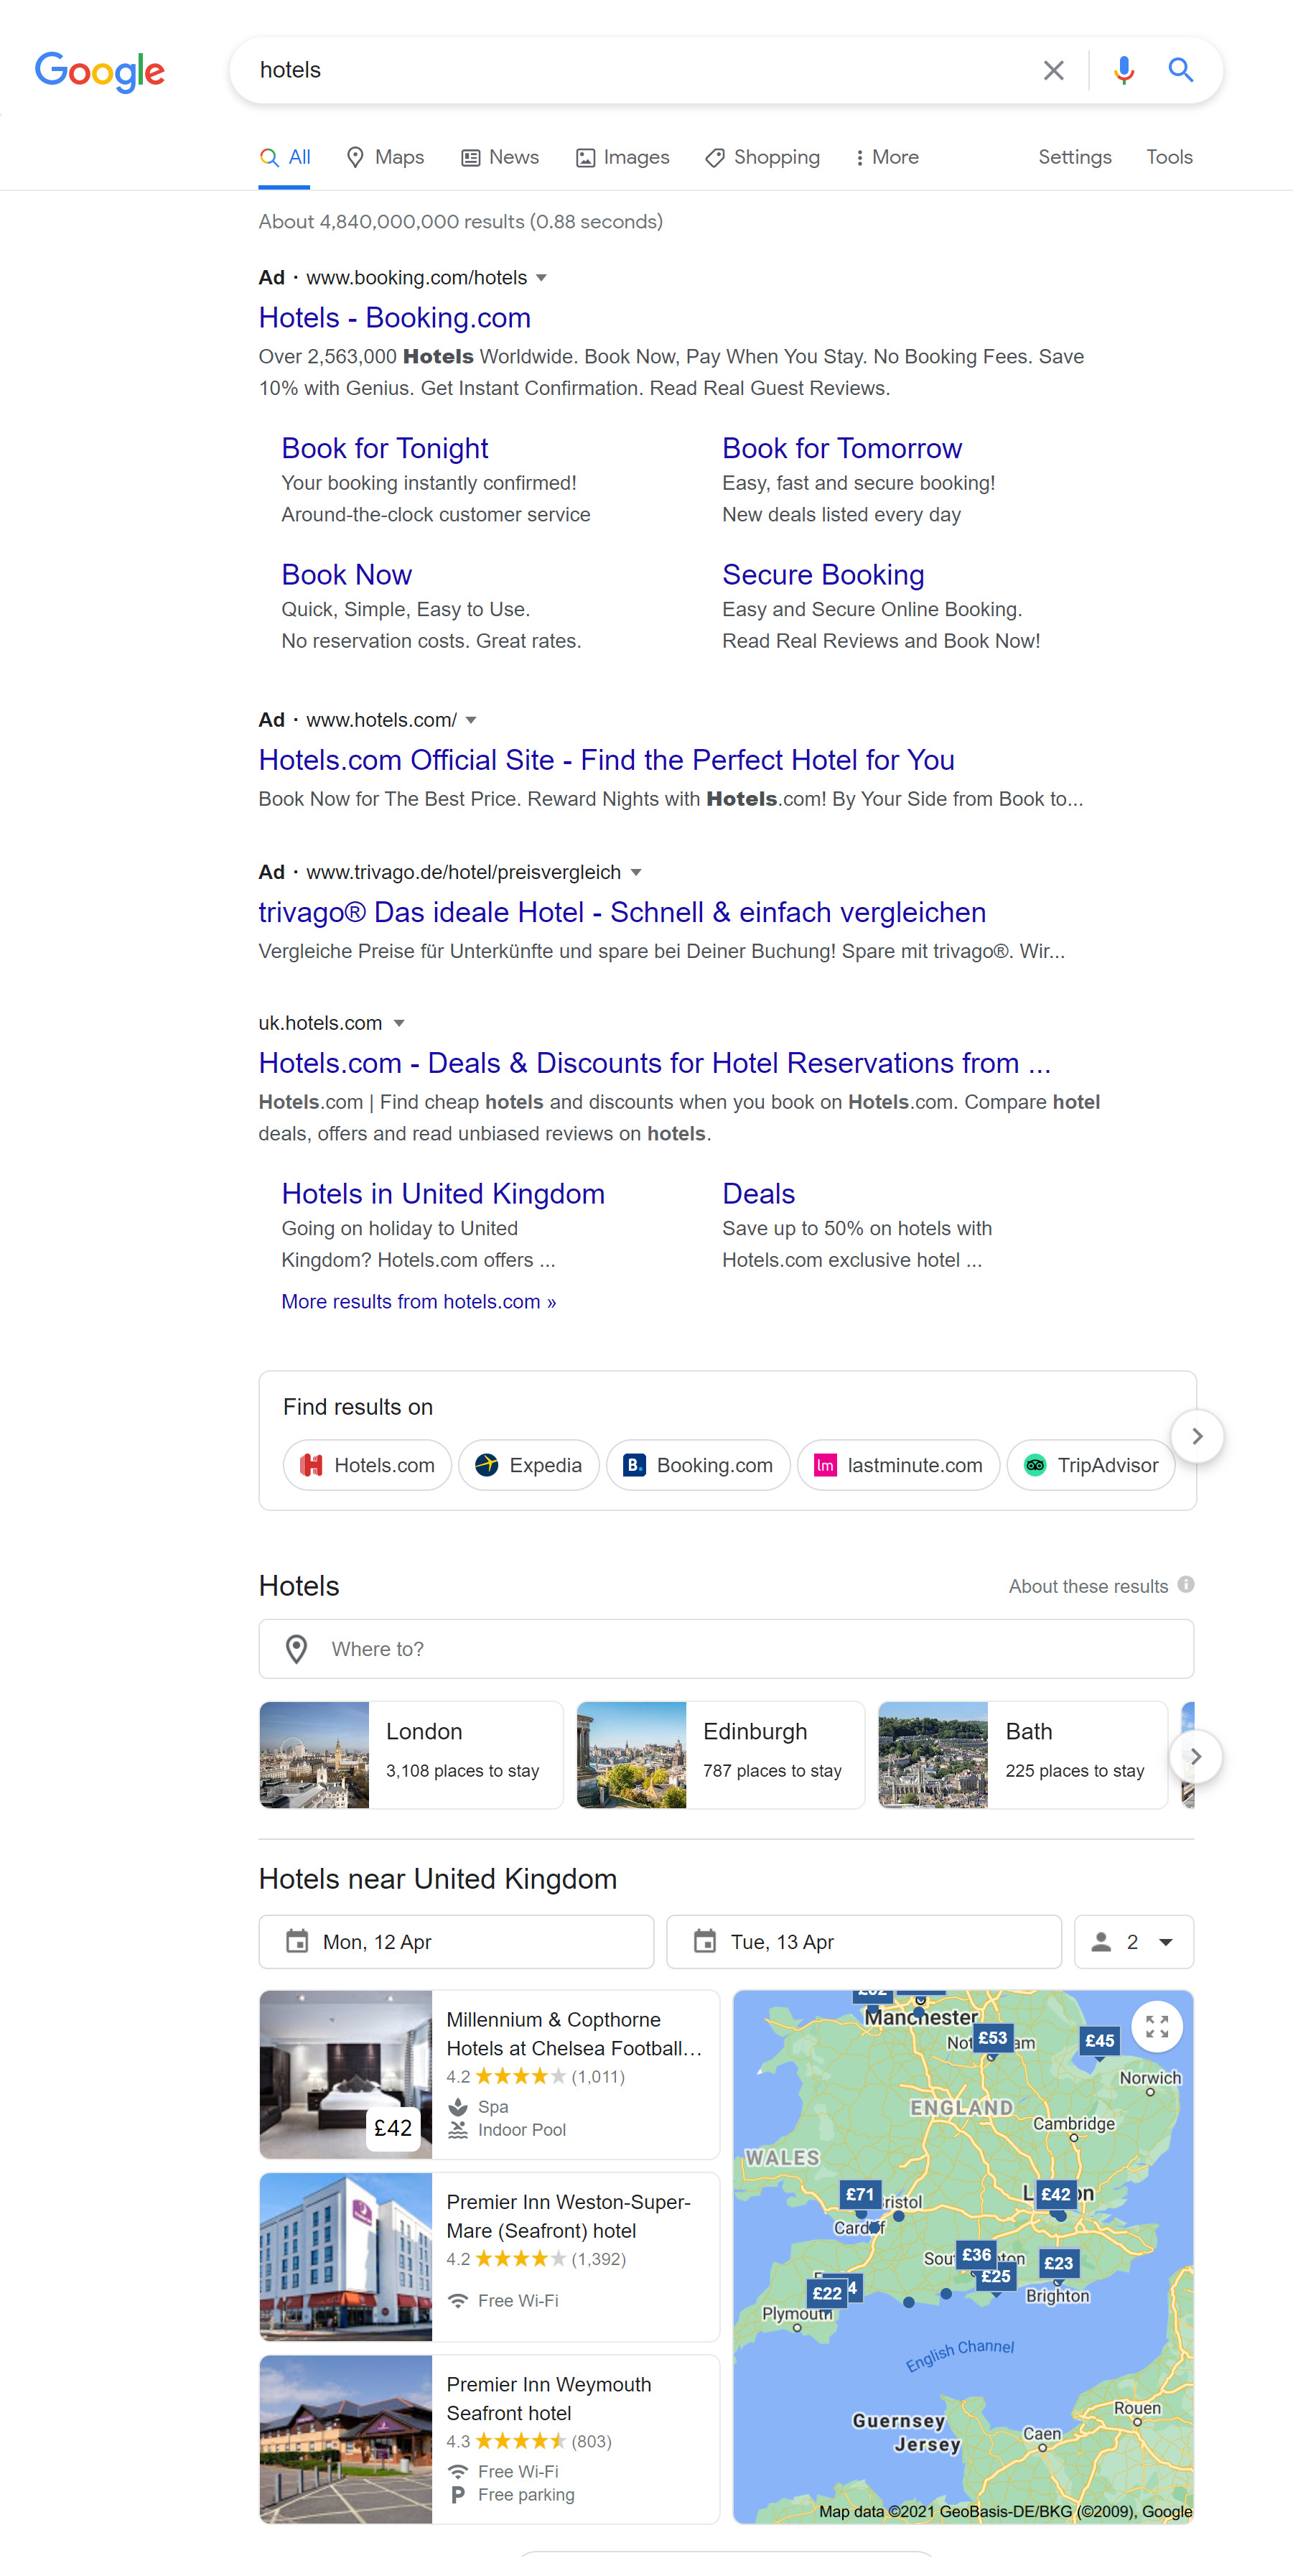 Google's hotel search feature